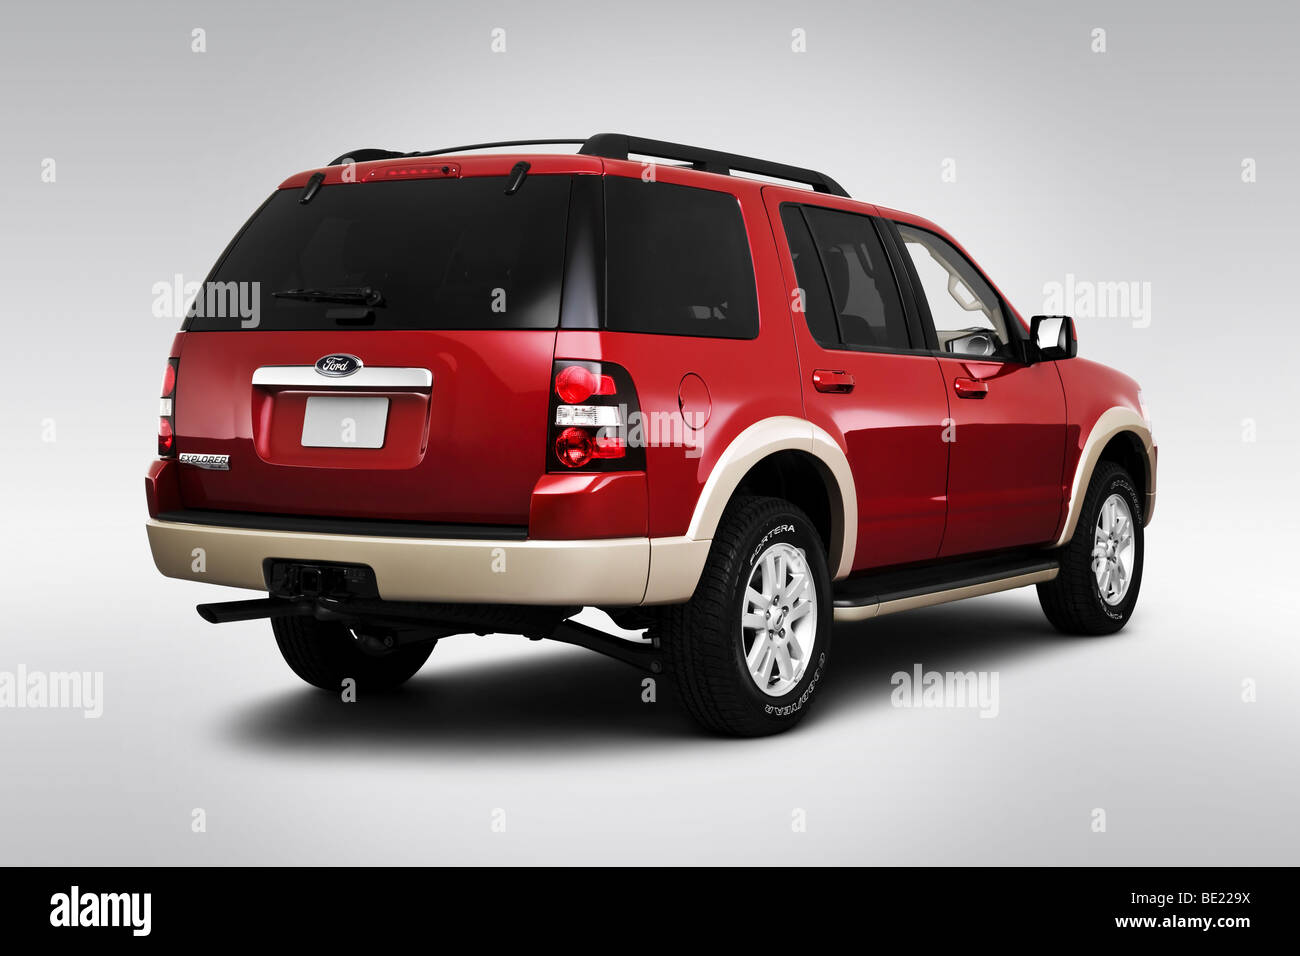 Ford Explorer Eddie Bauer Suv Stock Photo Royalty Free